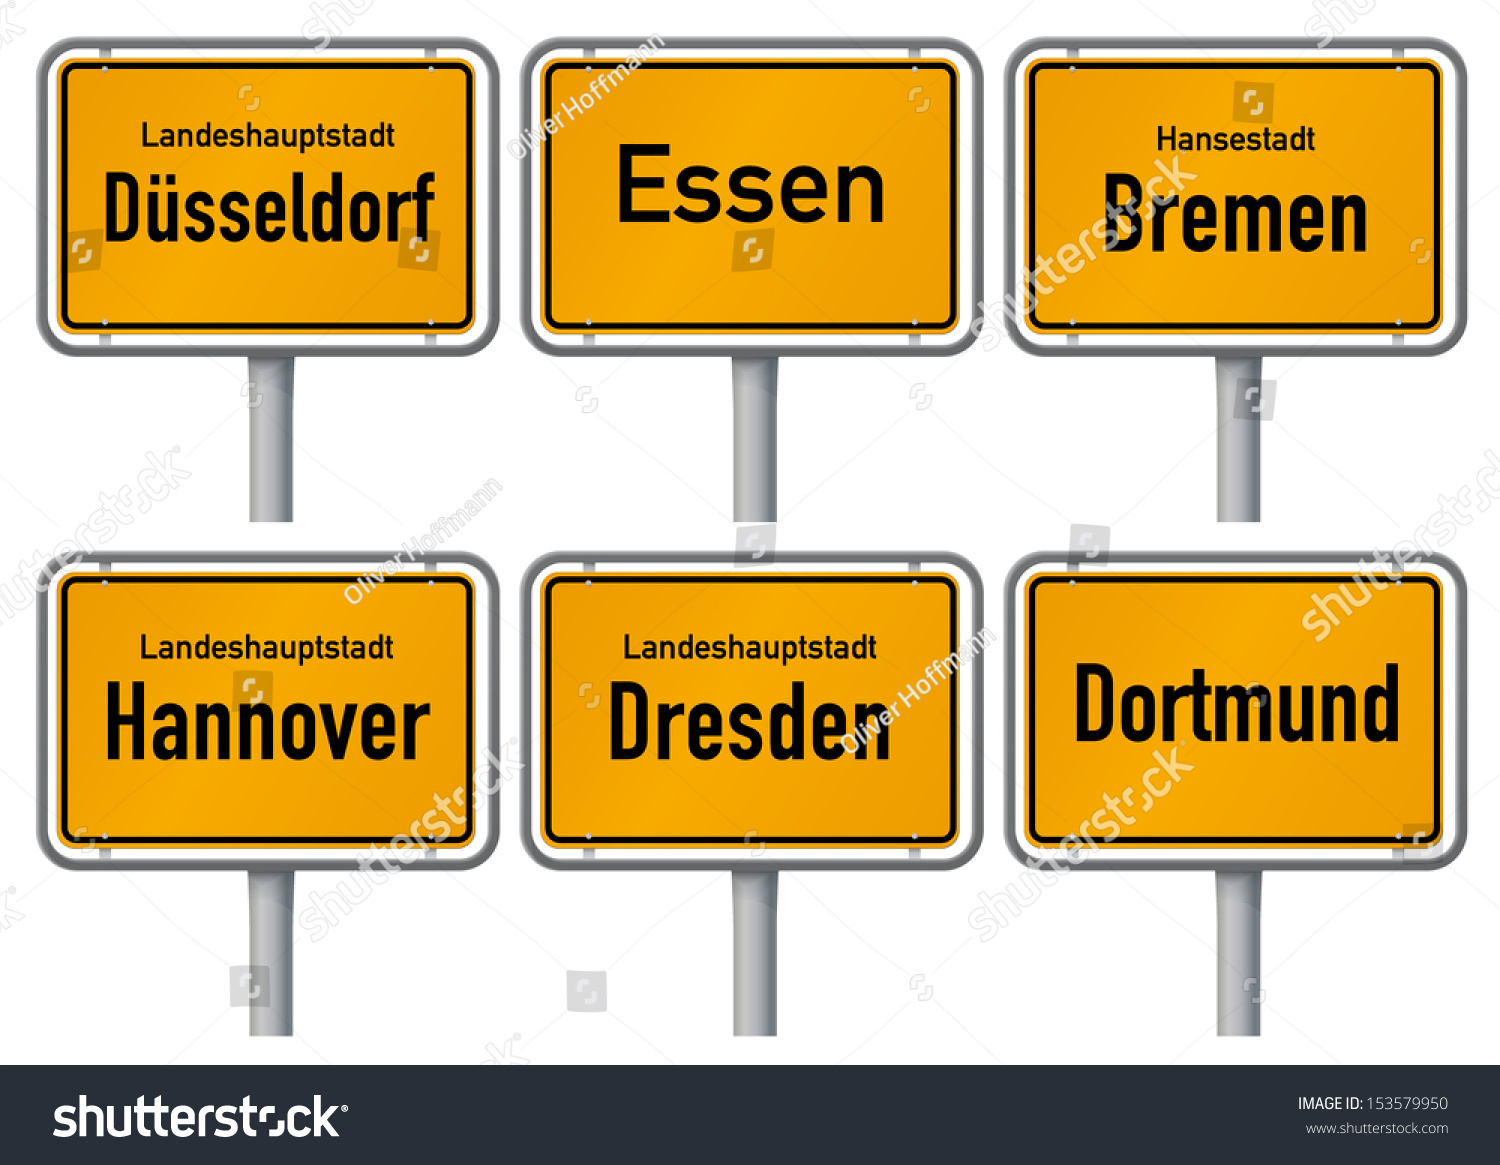 city limits signs of six major cities in germany dusseldorf essen bremen hannover dresden. Black Bedroom Furniture Sets. Home Design Ideas